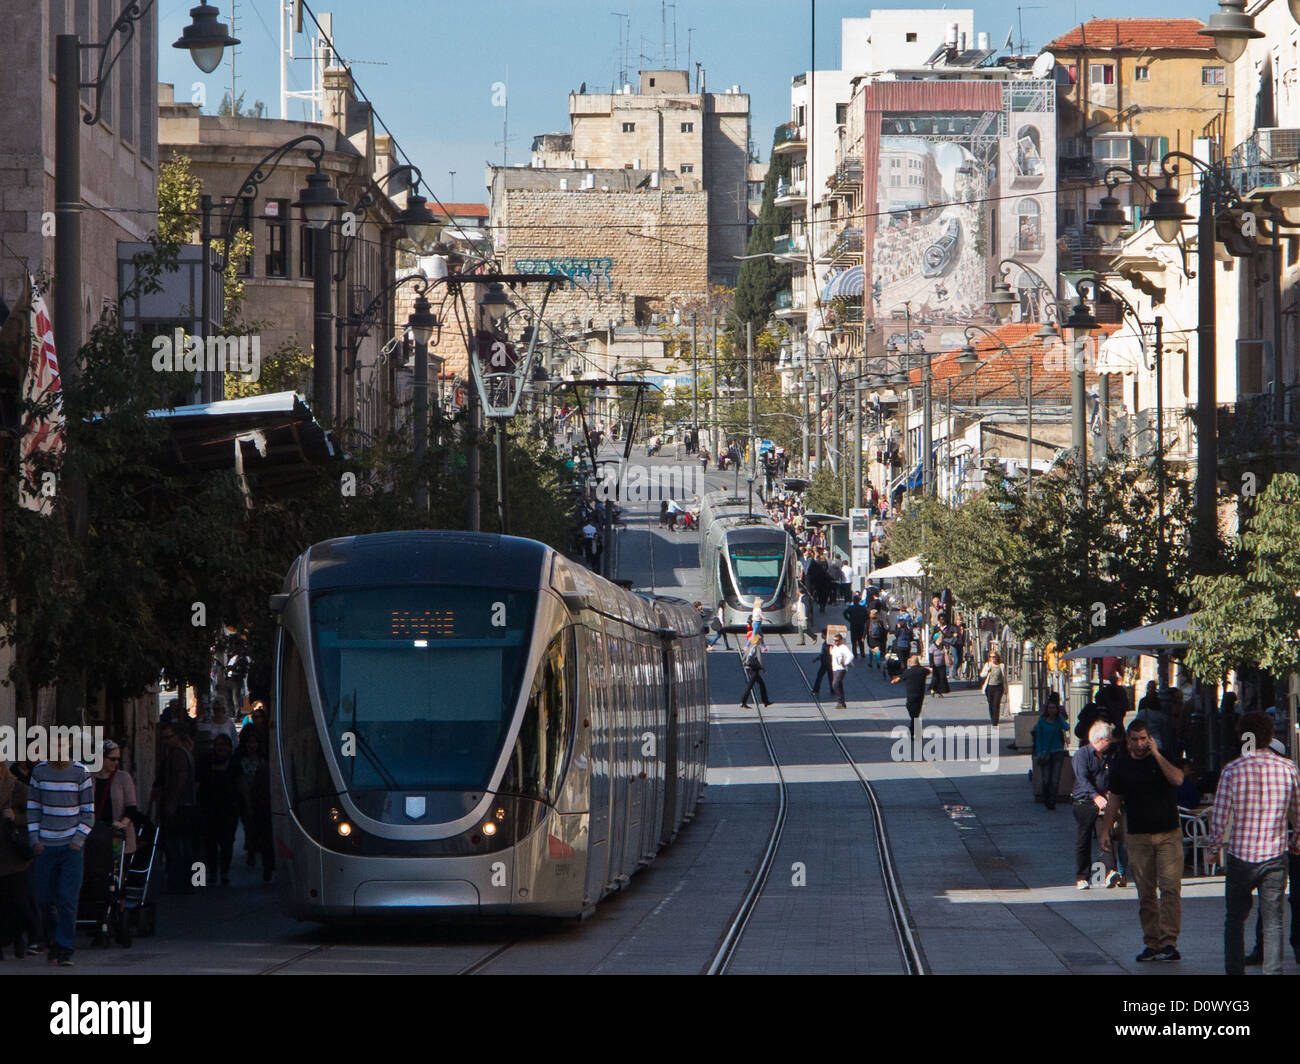 Jaffa Road in downtown Jerusalem serves as a pedestrian walkway and the route of a tram. - Stock Image